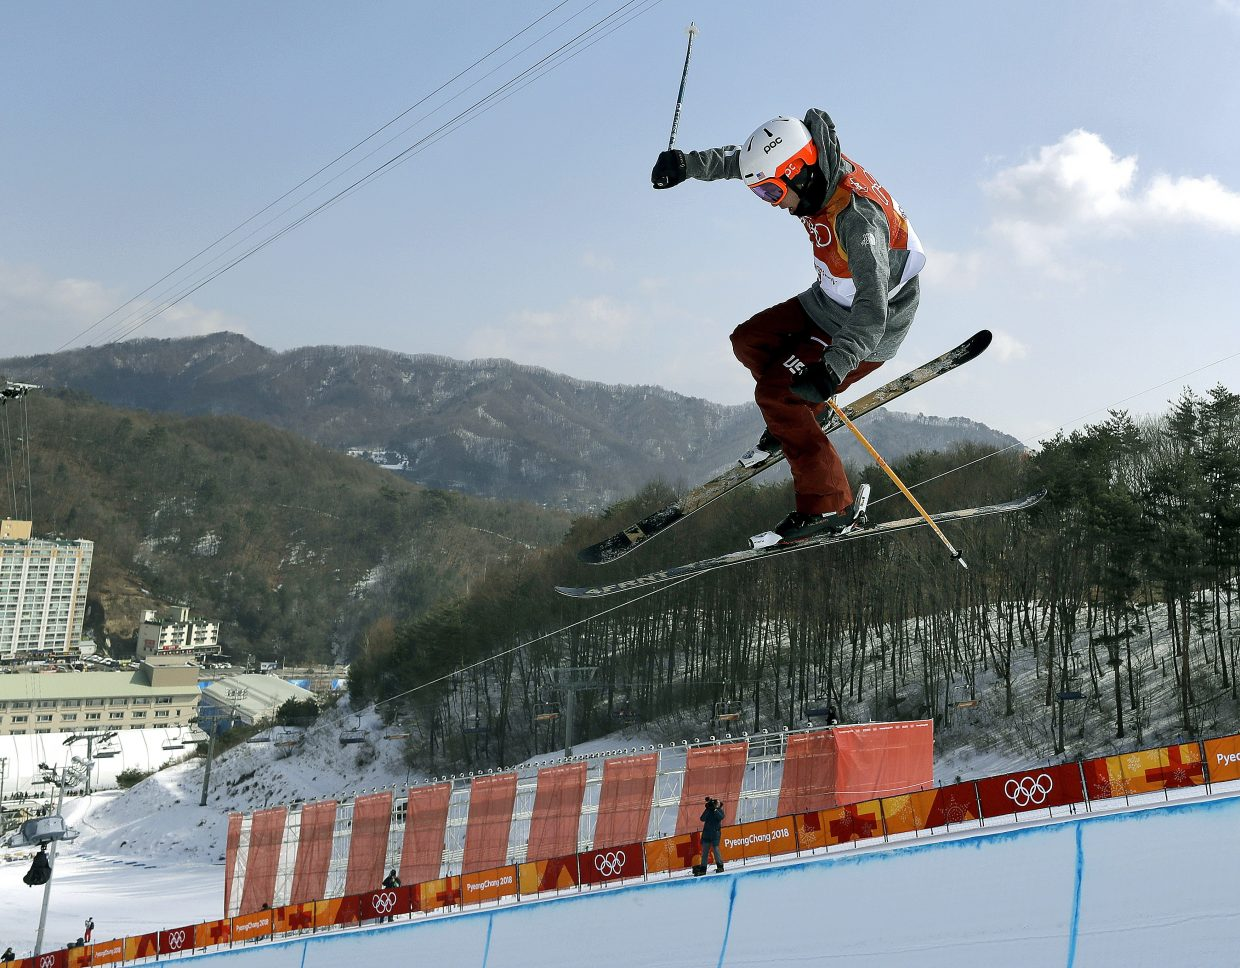 Alex Ferreira, of the United States, jumps during the men's halfpipe finals at Phoenix Snow Park at the 2018 Winter Olympics in Pyeongchang, South Korea, Thursday, Feb. 22, 2018. (AP Photo/Kin Cheung)